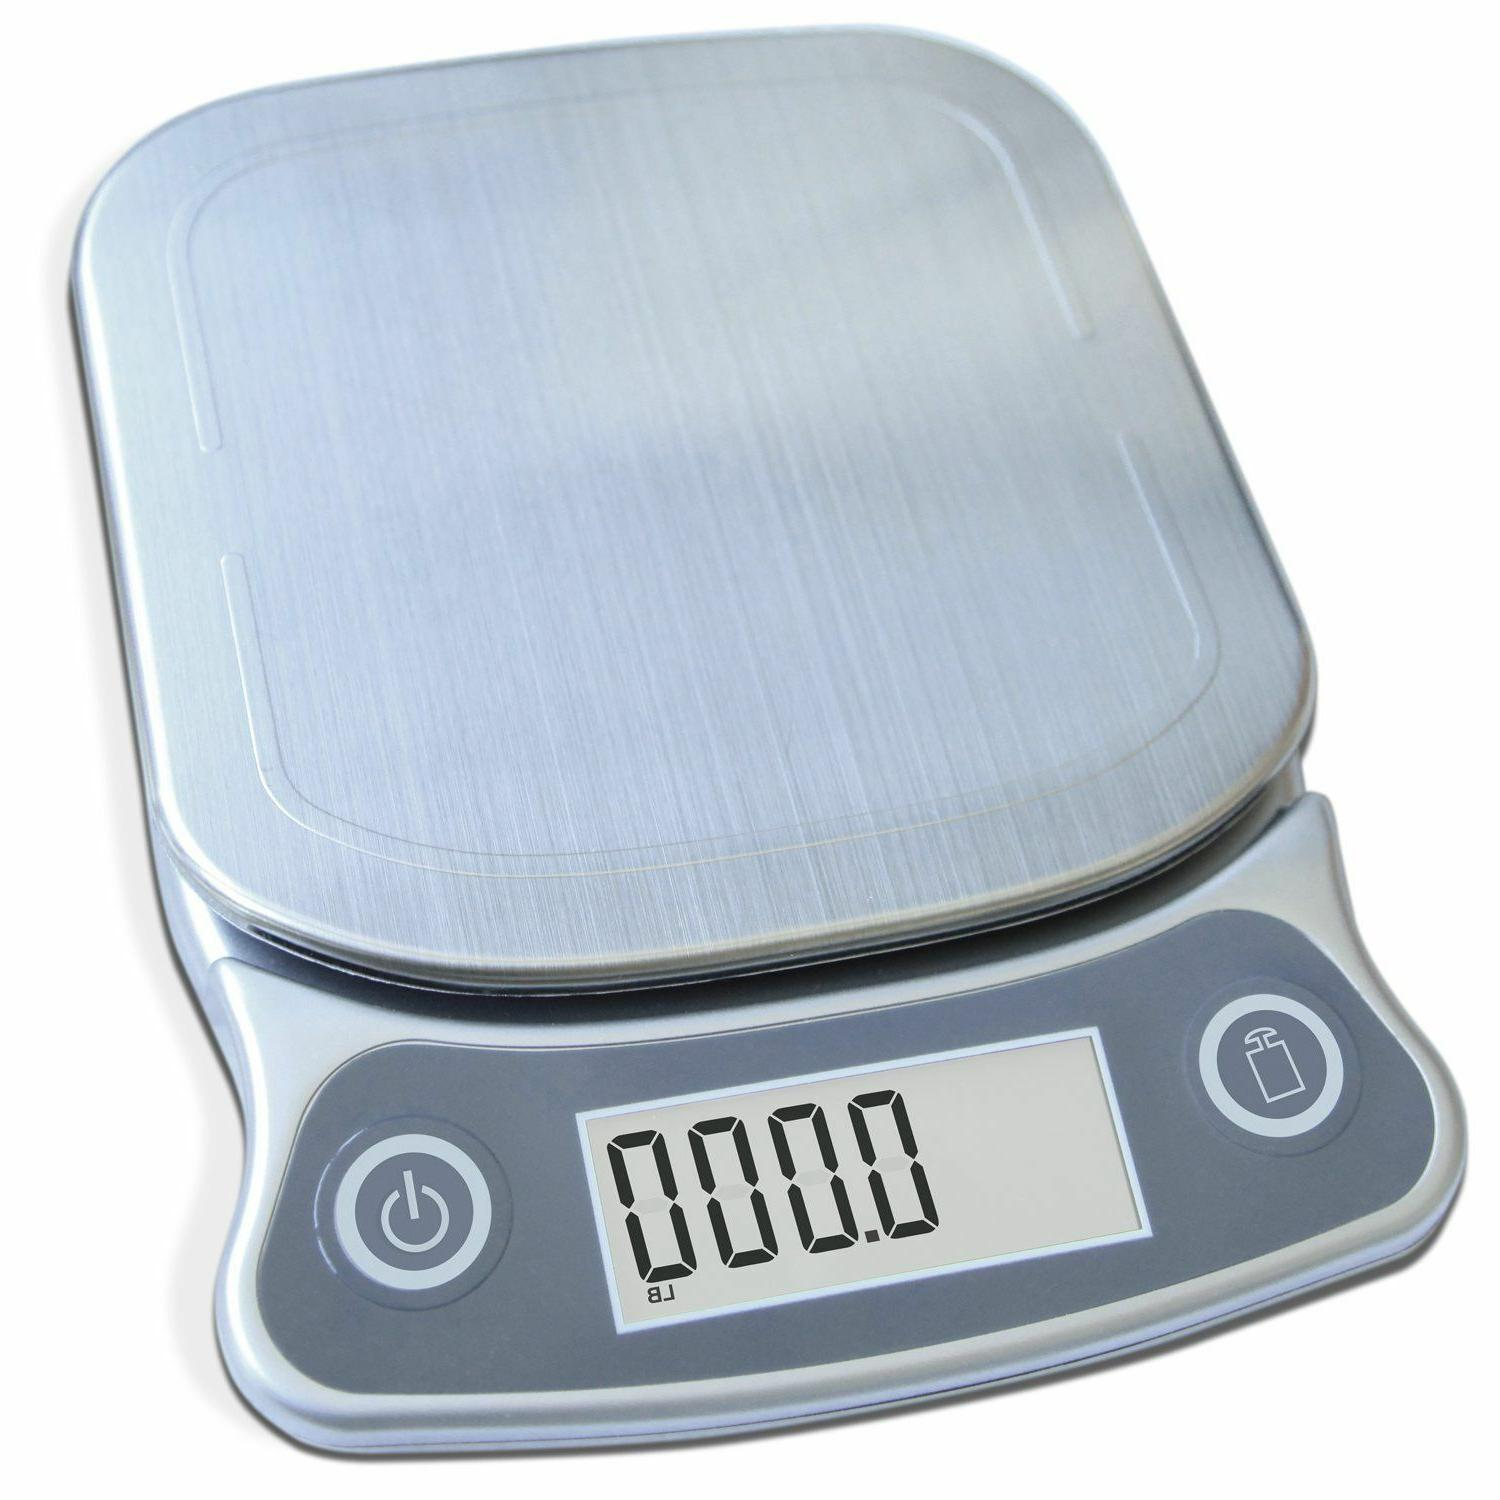 Eatsmart - Precision Elite Digital Kitchen Scale - Stainless